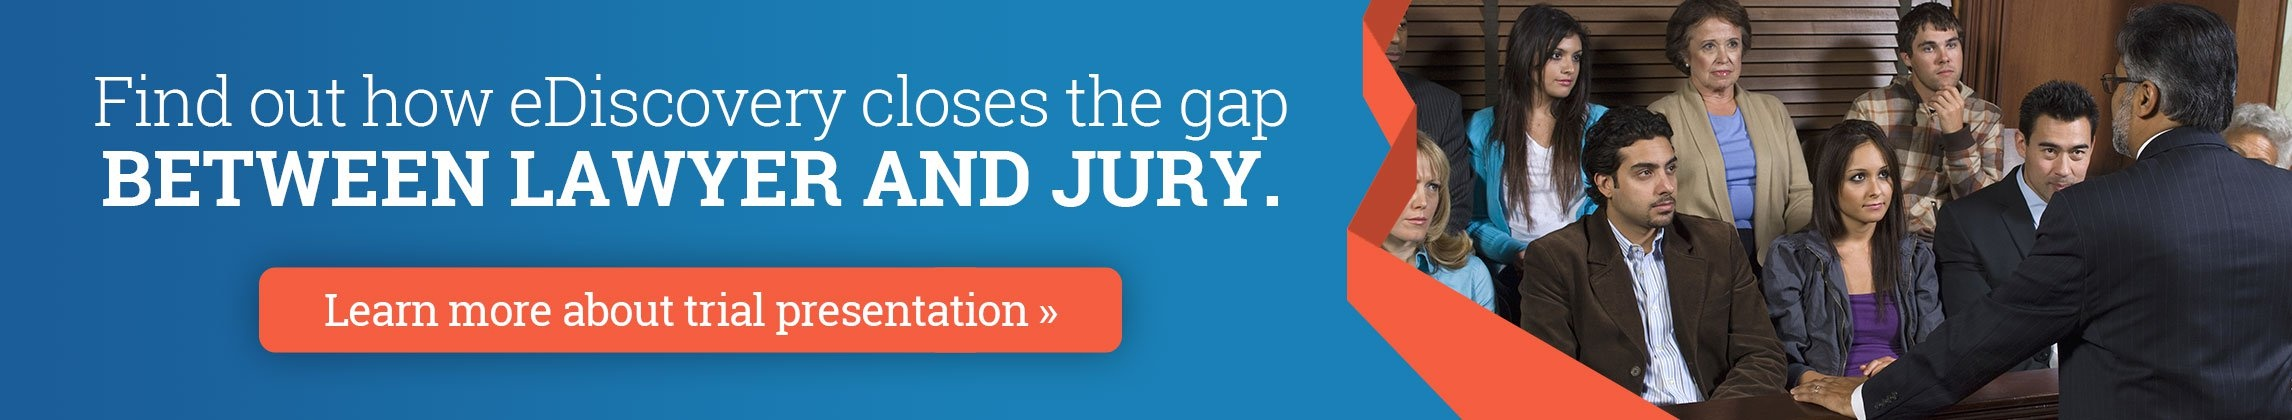 Find out how to close the gap between lawyer and jury